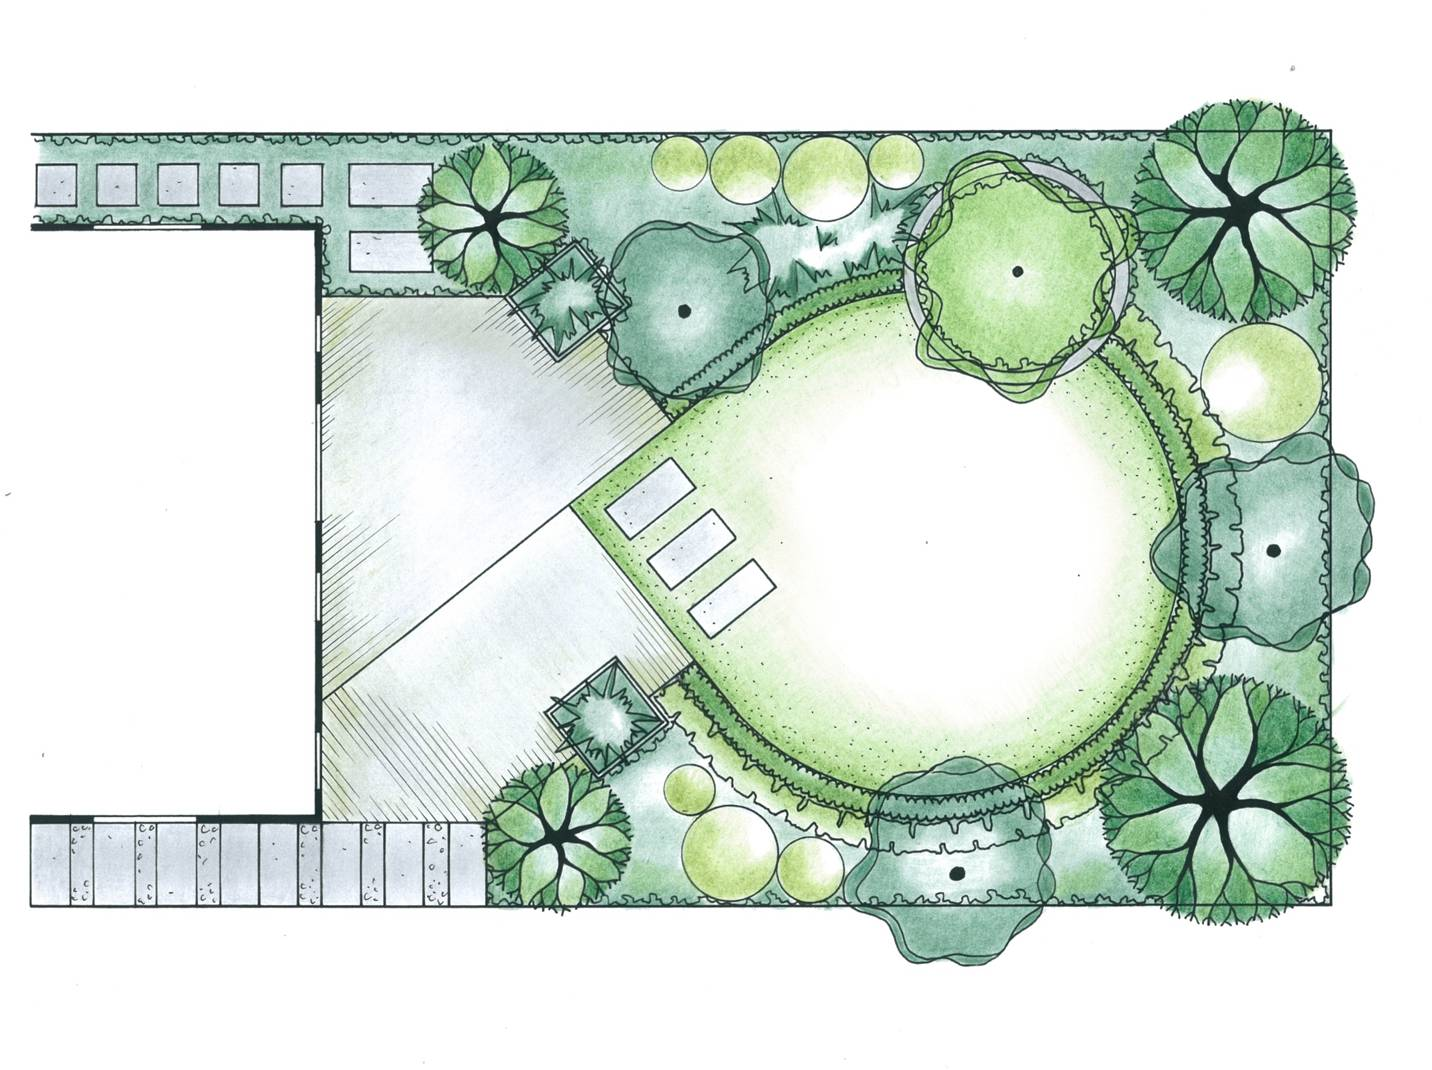 garden-plan-layout-diagonal-theme-combined-with-circles